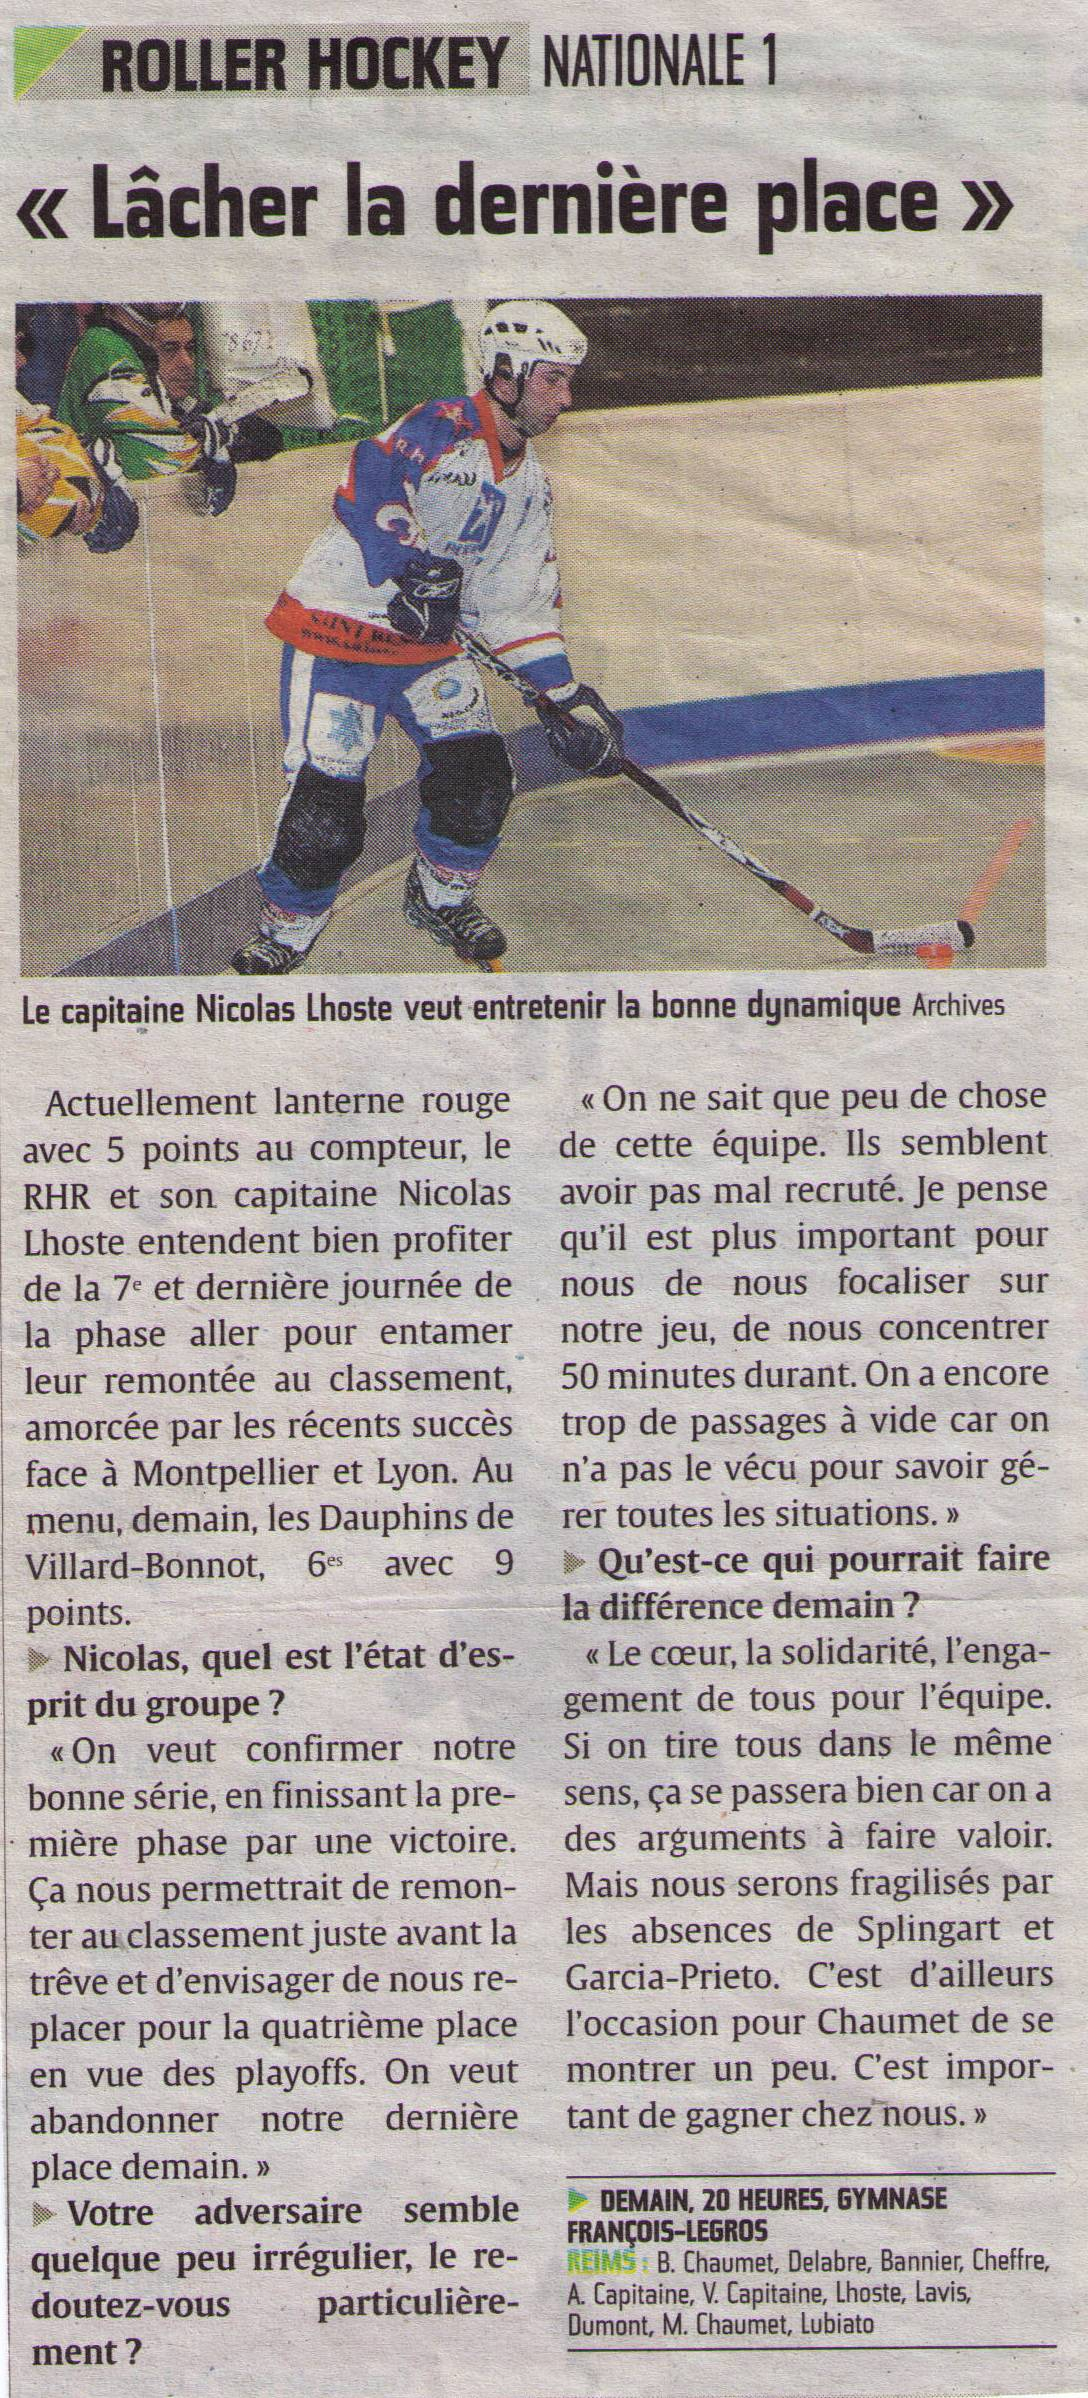 2013-12-06 - N1 RHR vs VILLARD-BONNOT